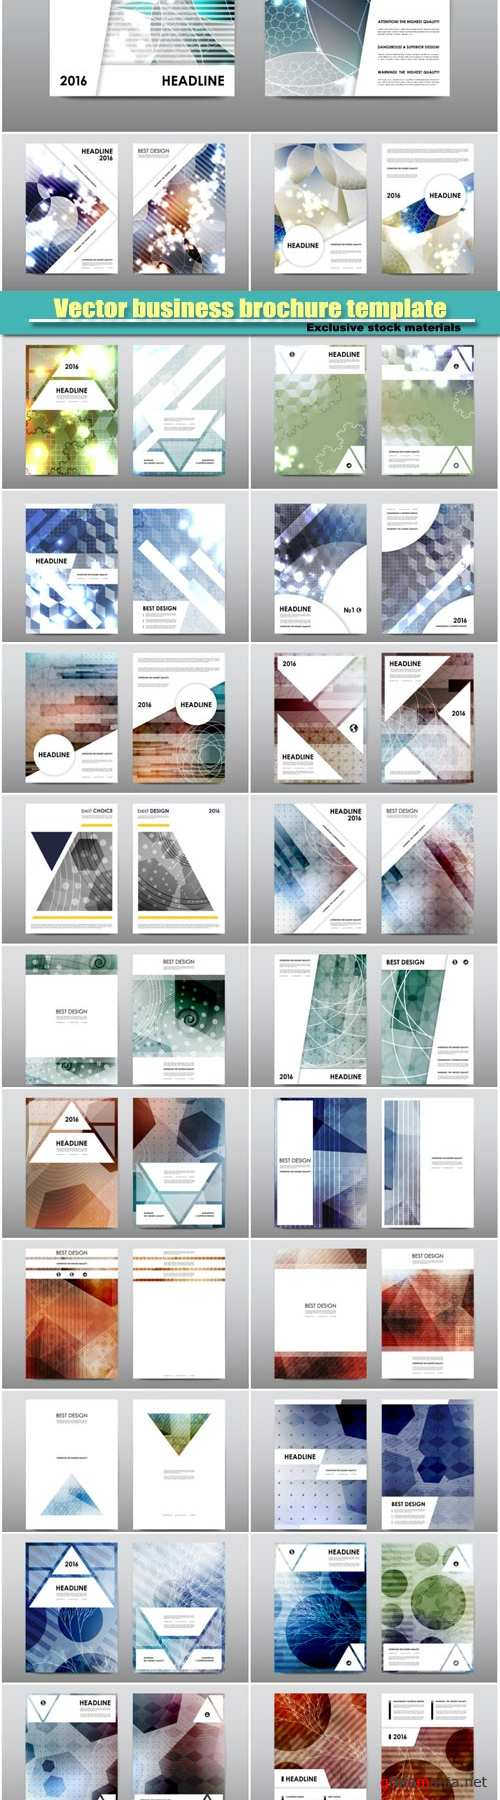 Abstract vector business brochure template